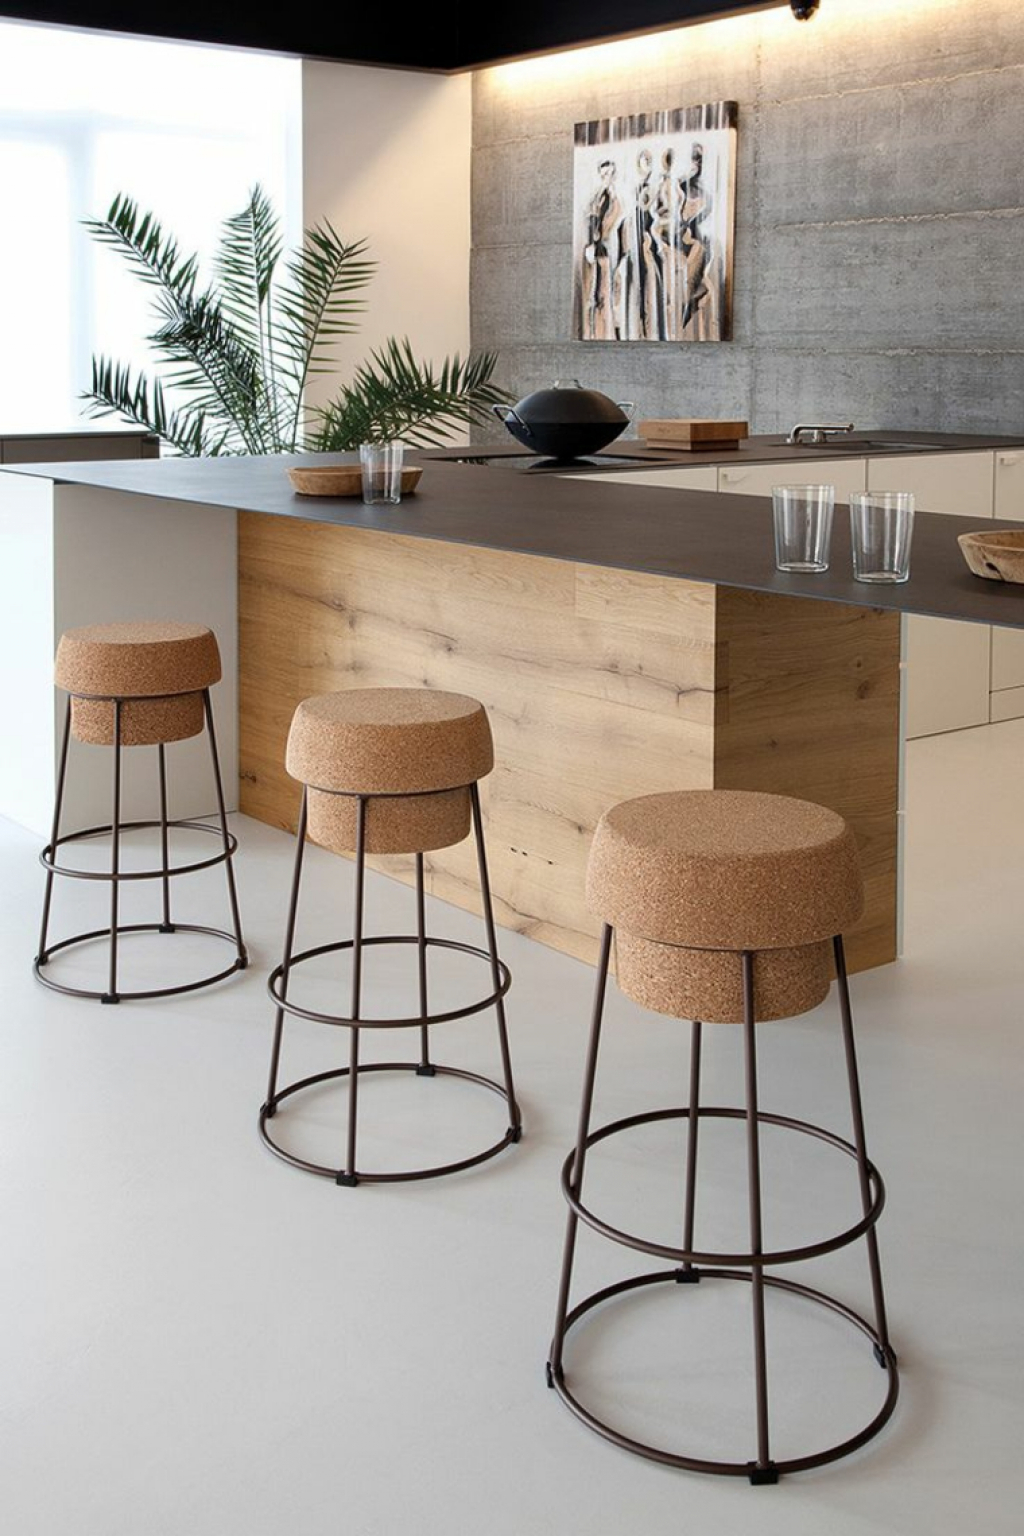 Contemporary Bar Stools 14 Contemporary Bar Stools To Complete Your Kitchen